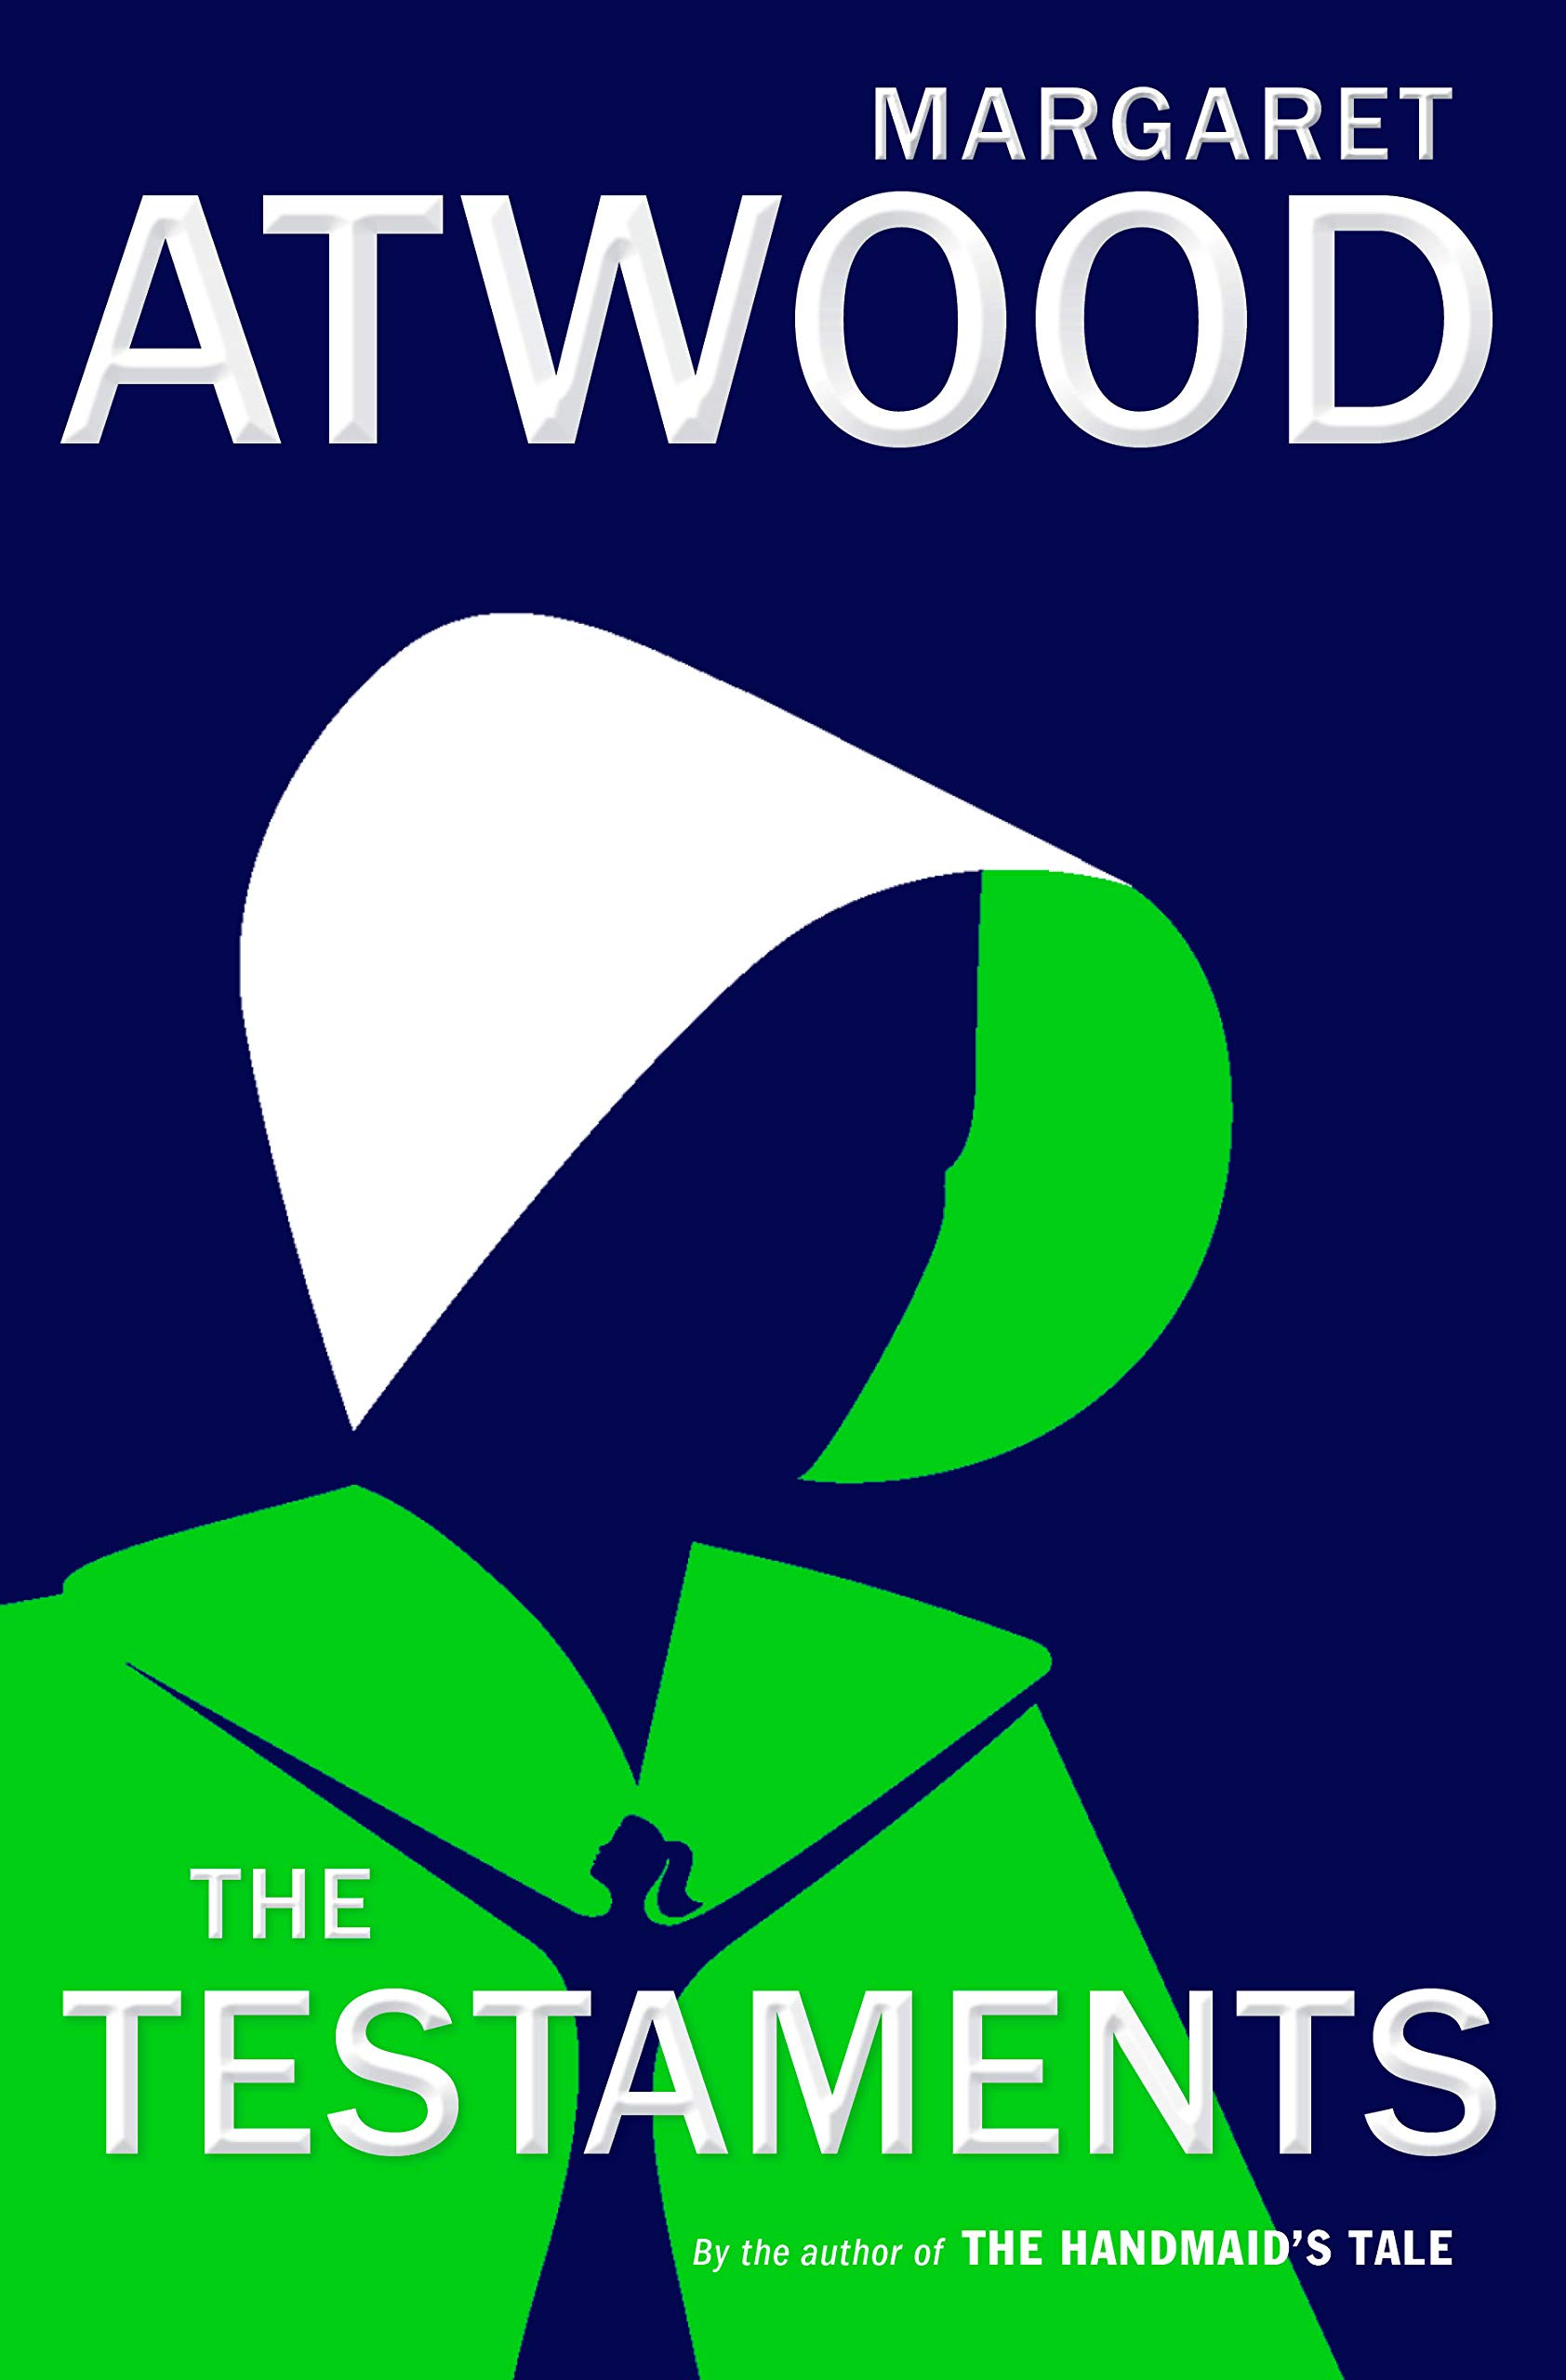 Dumbo Lit Book Club: The Testaments by Margaret Atwood